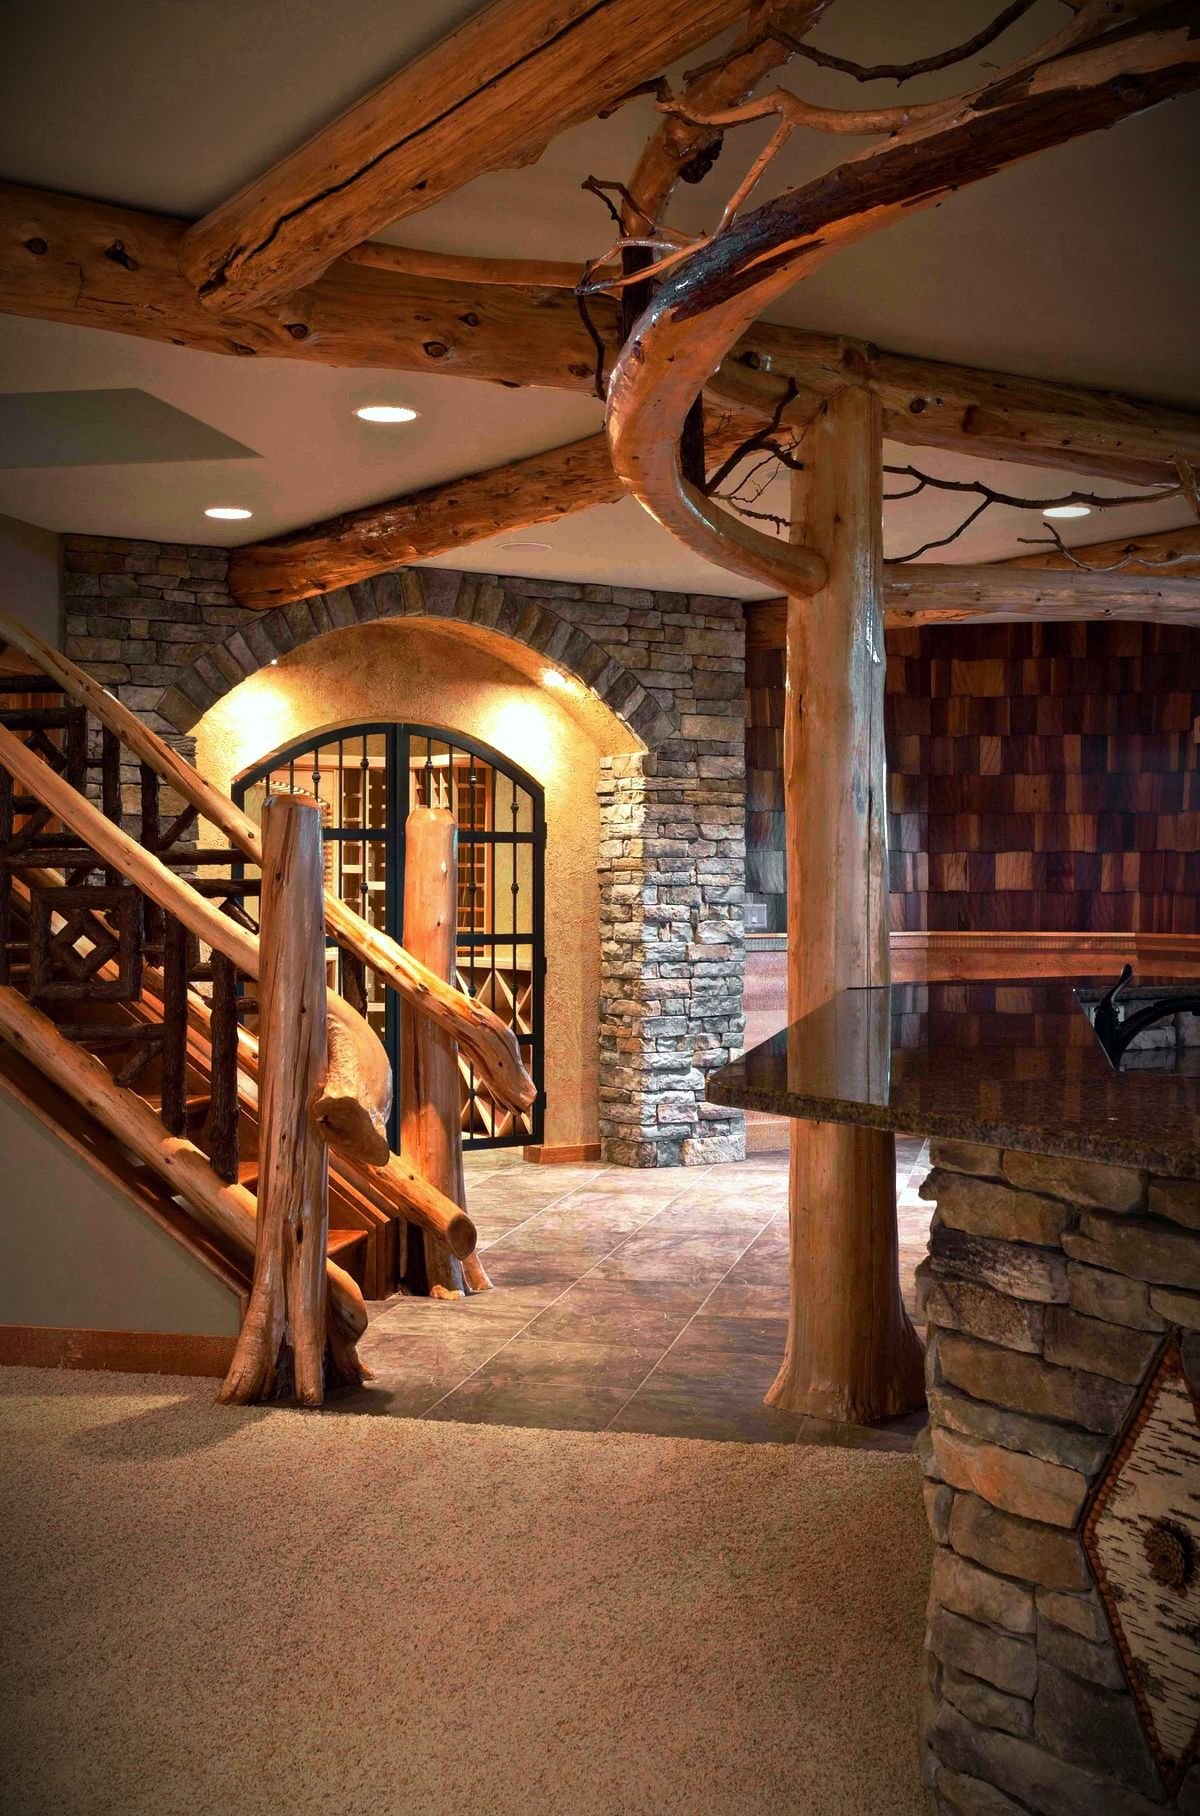 view of stairs wine cellar rustic woodwork in adirondack style